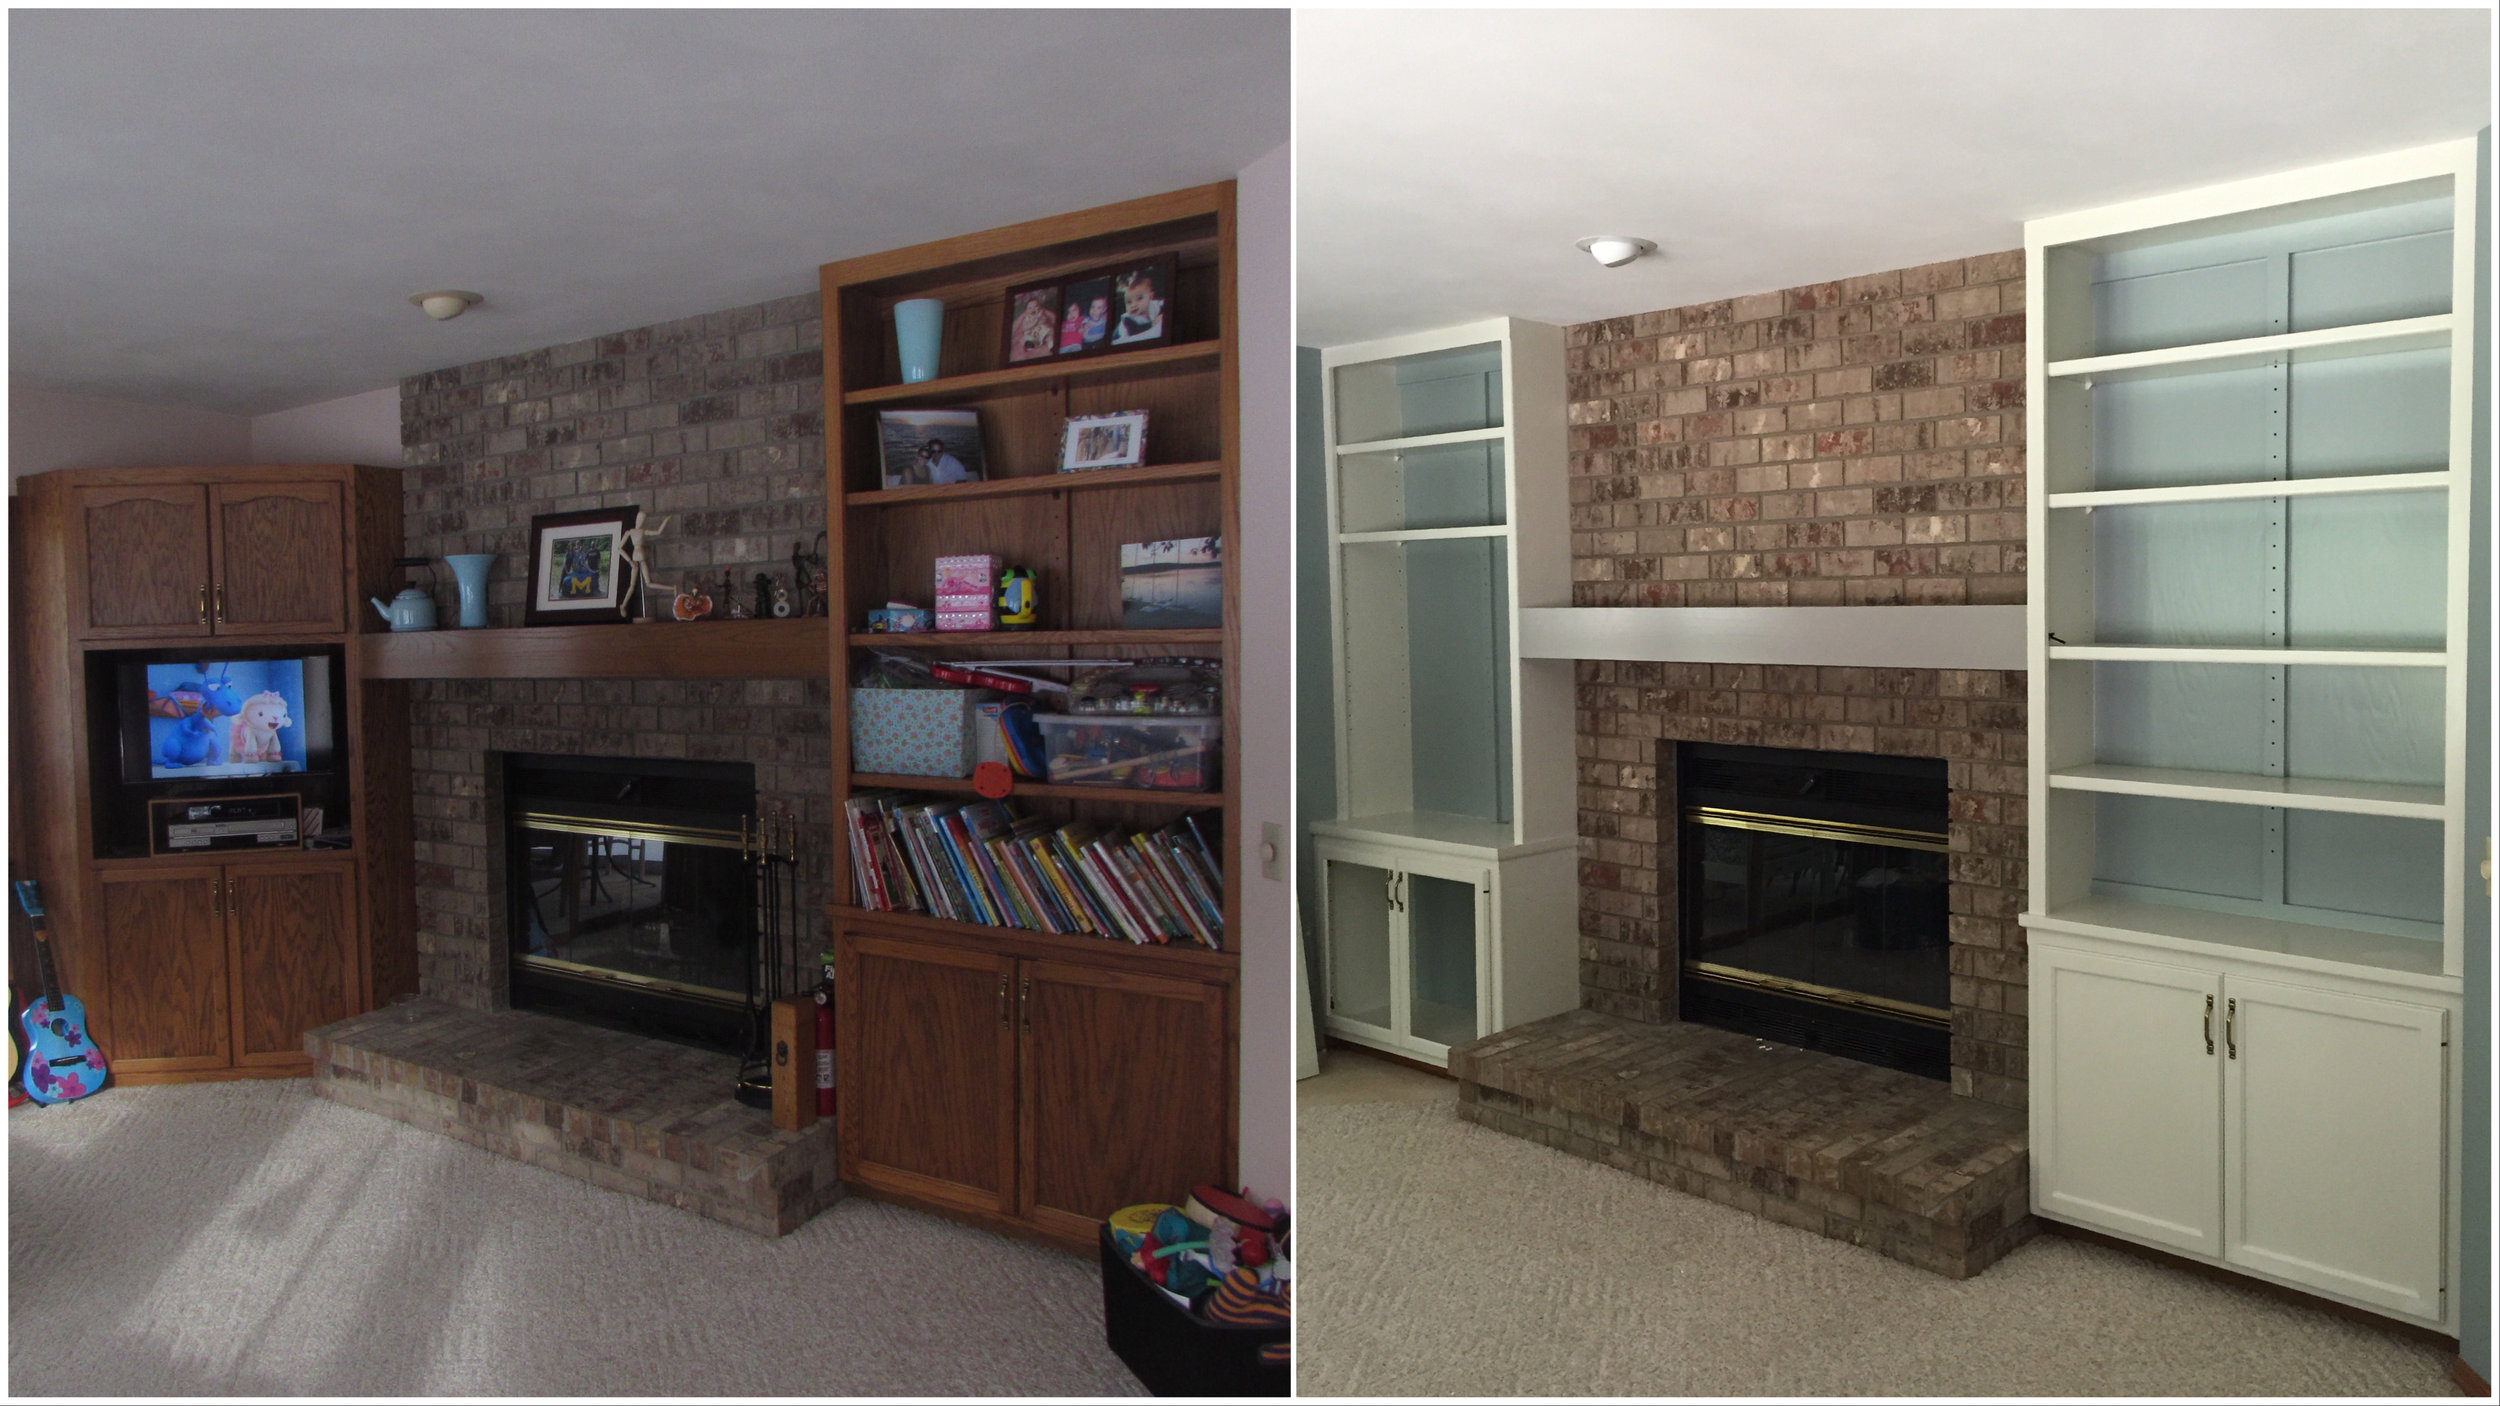 Fireplace and Bookshelves - Before and After